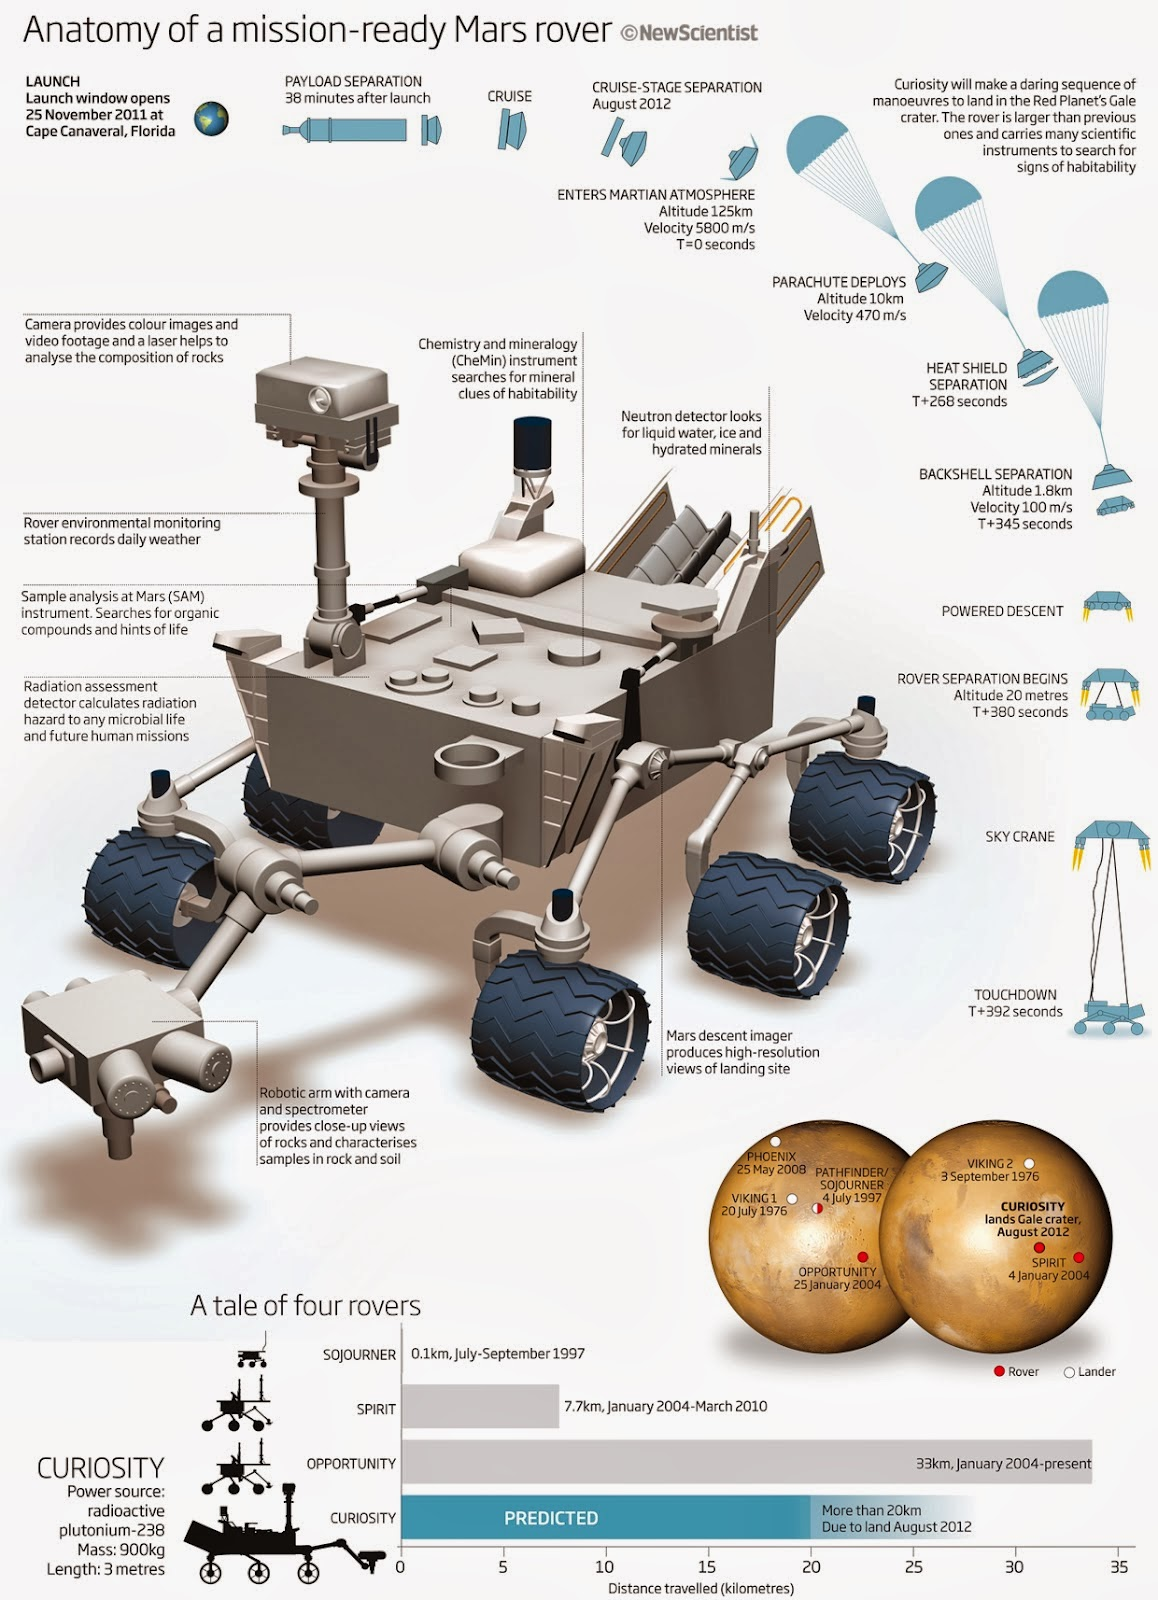 curiosity rover size comparison - photo #19